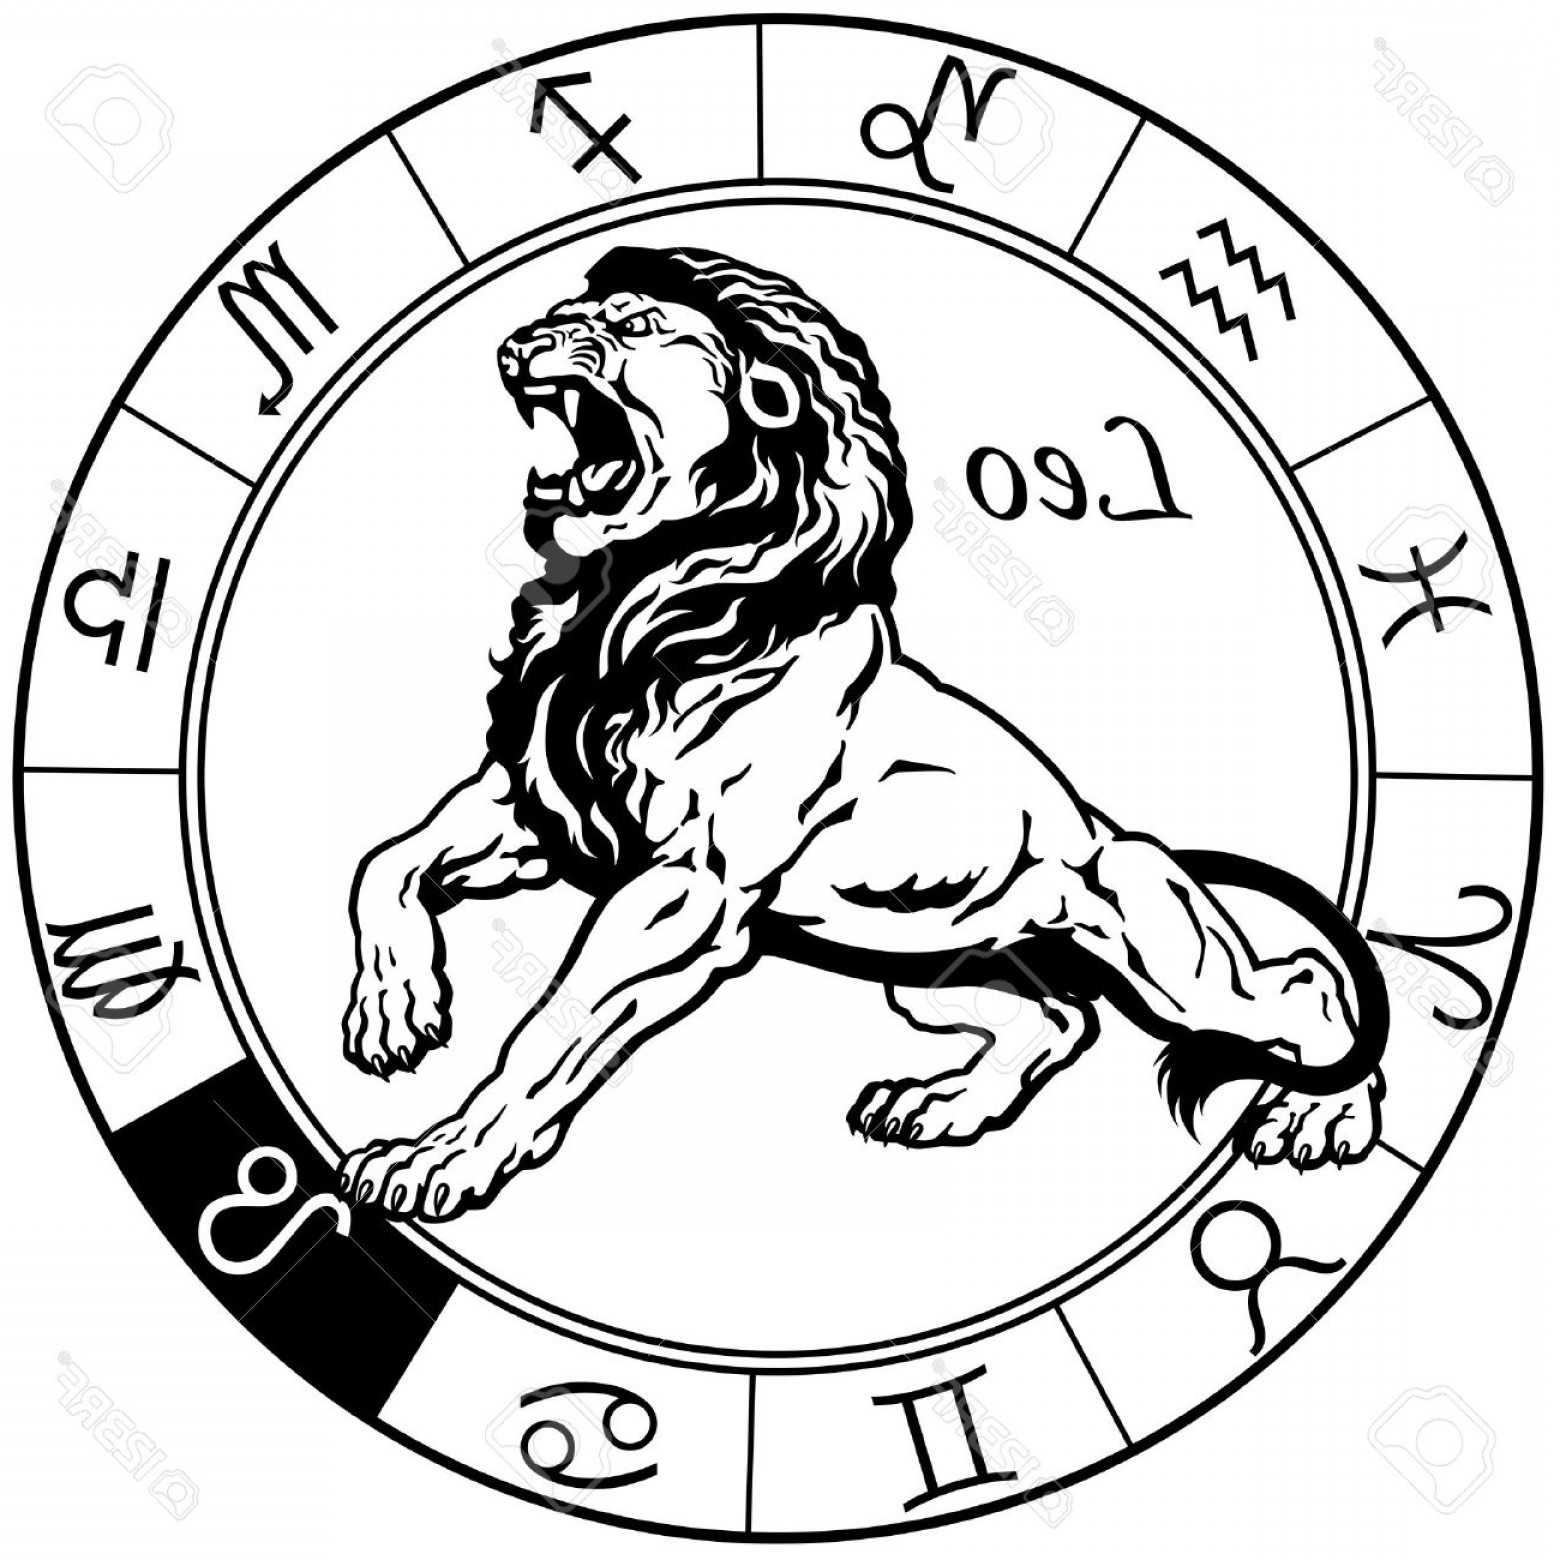 Leo Symbol Zodiac Vector: Photostock Vector Leo Or Lion Astrological Zodiac Sign Black And White Image